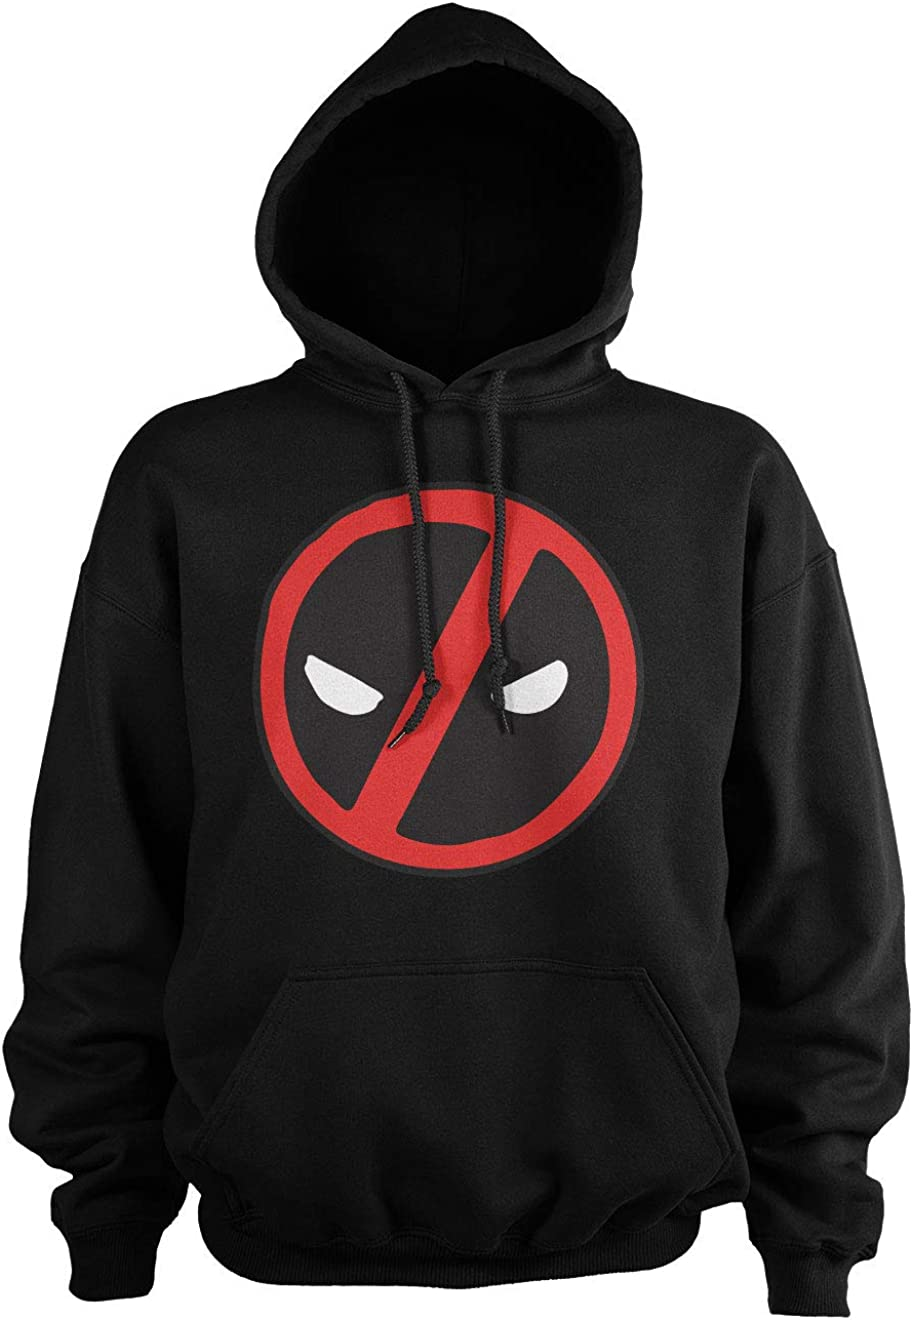 Deadpool Officially Licensed Icon Hoodie Tall Black online shopping Big New York Mall